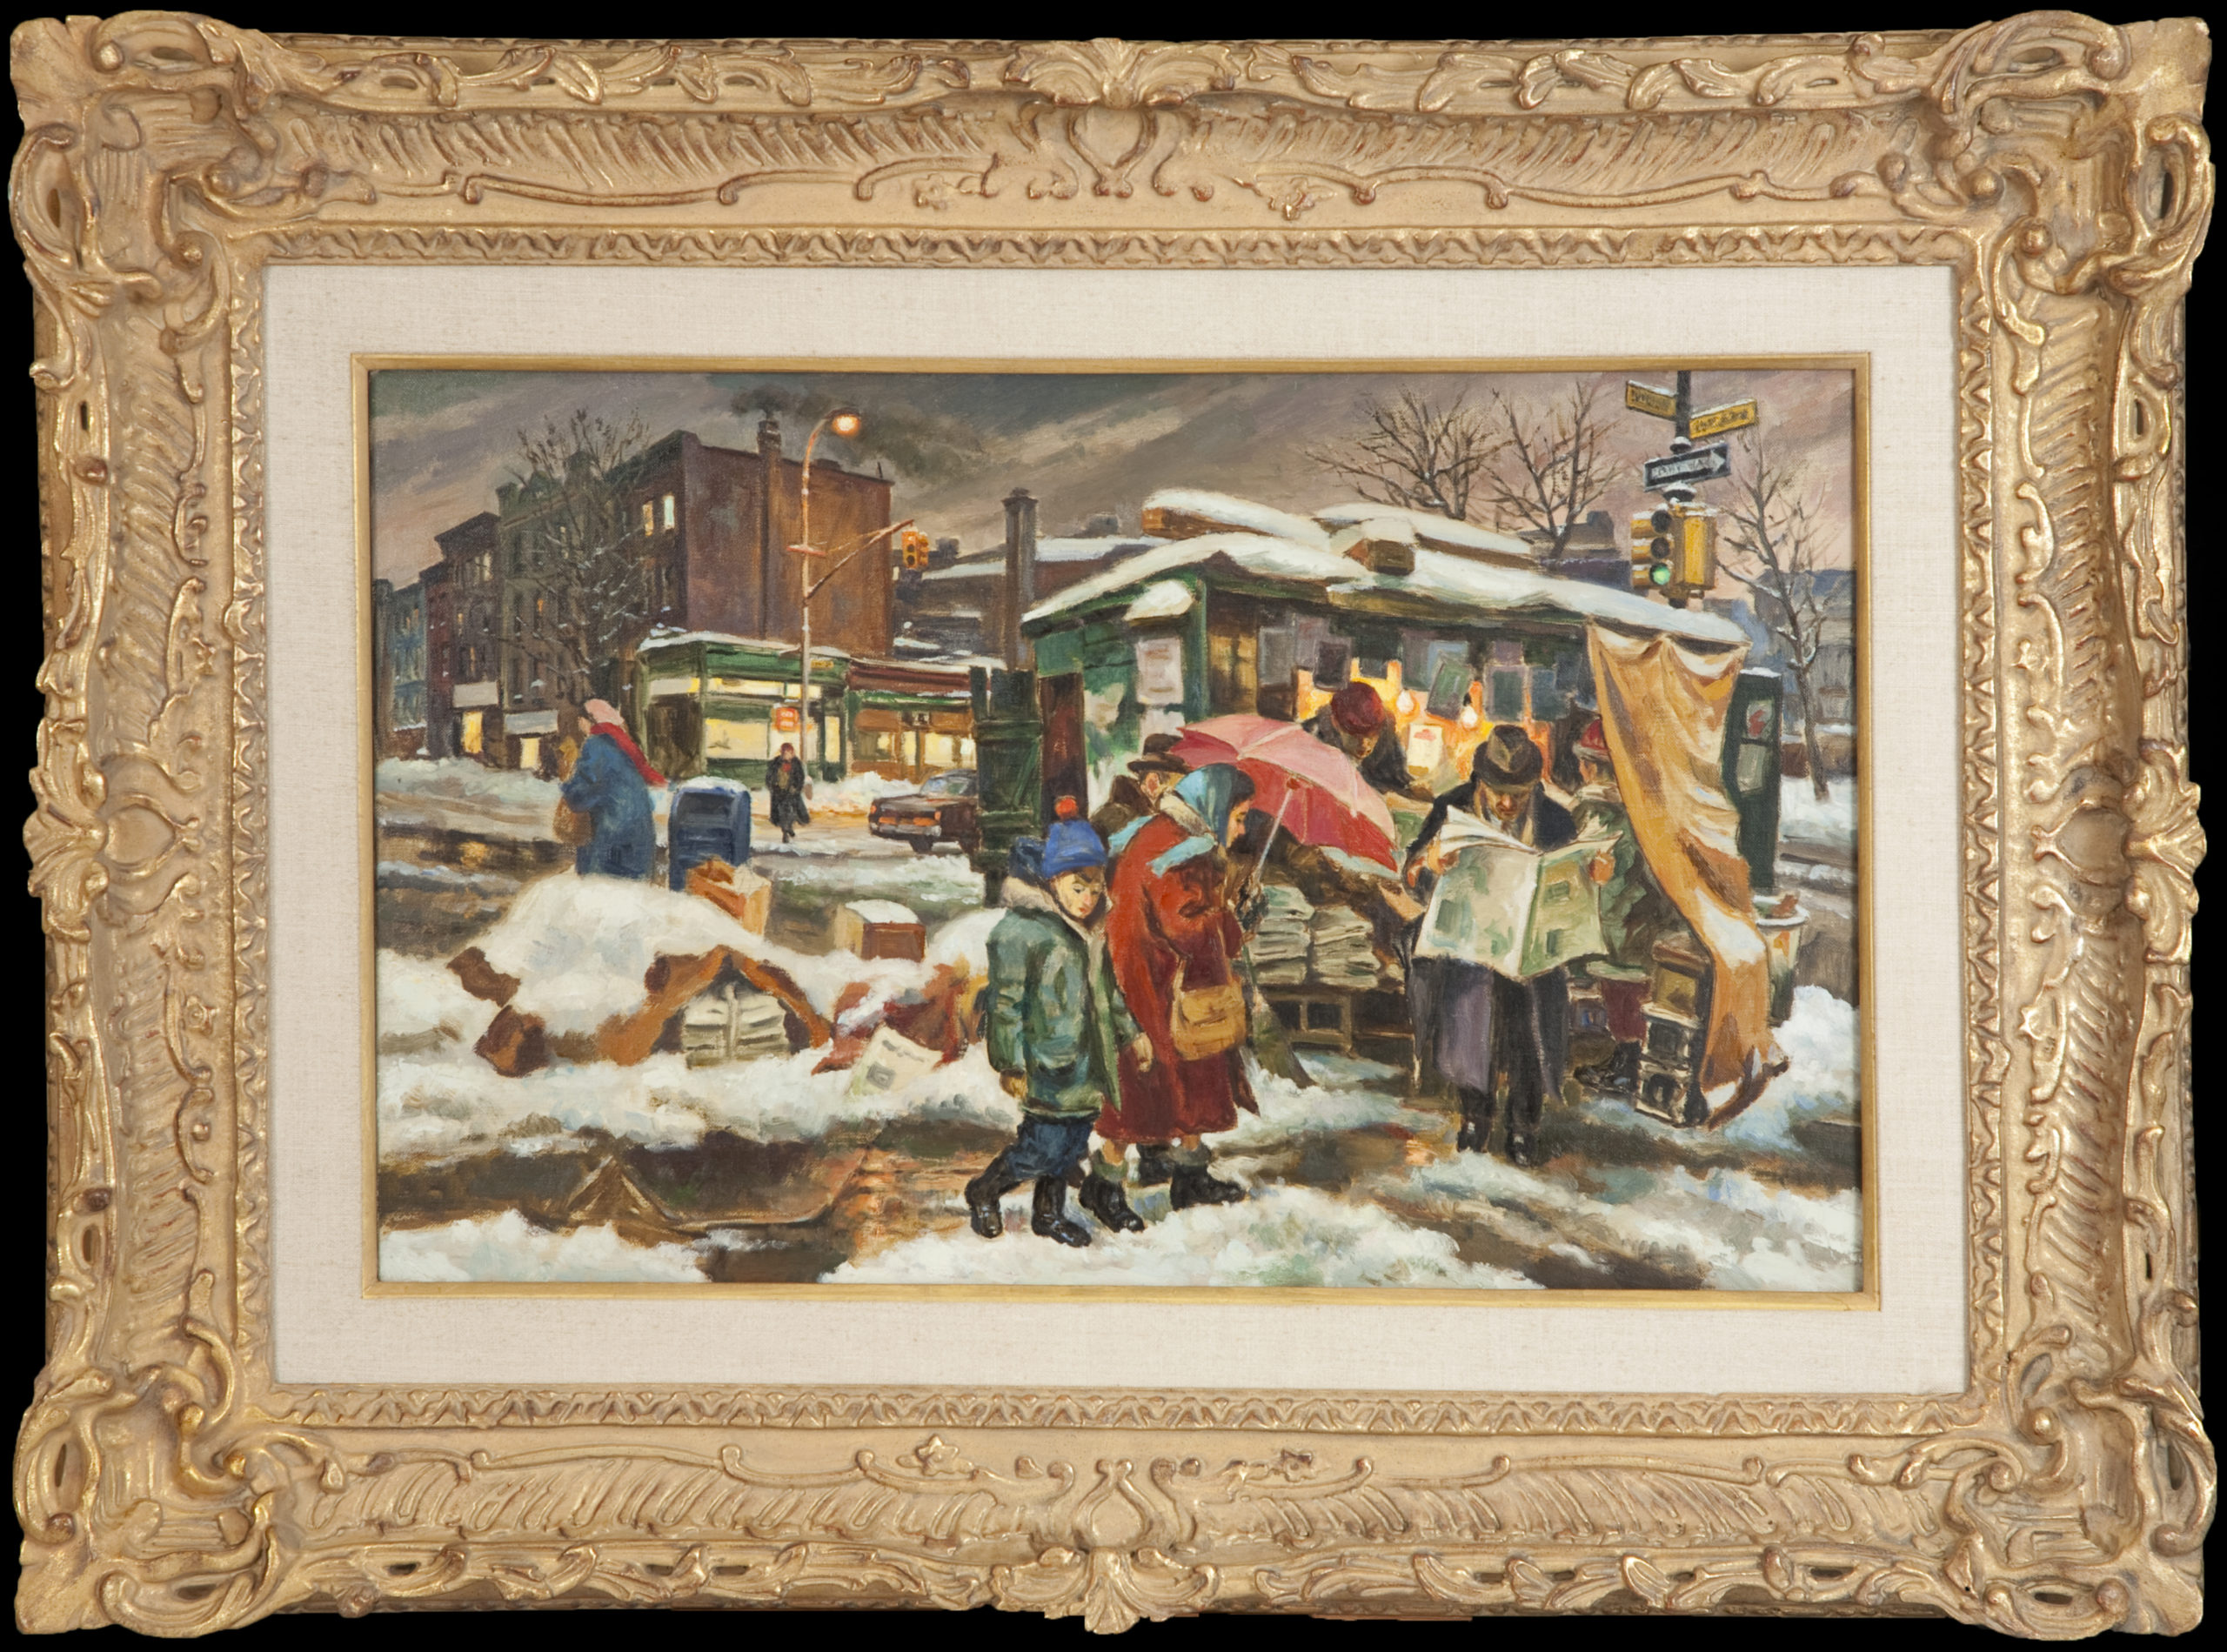 070 Winter Scene in New York 1970s - Oil on Canvas - 26 x 16 - Frame: 37.5 x 27 x 3.5